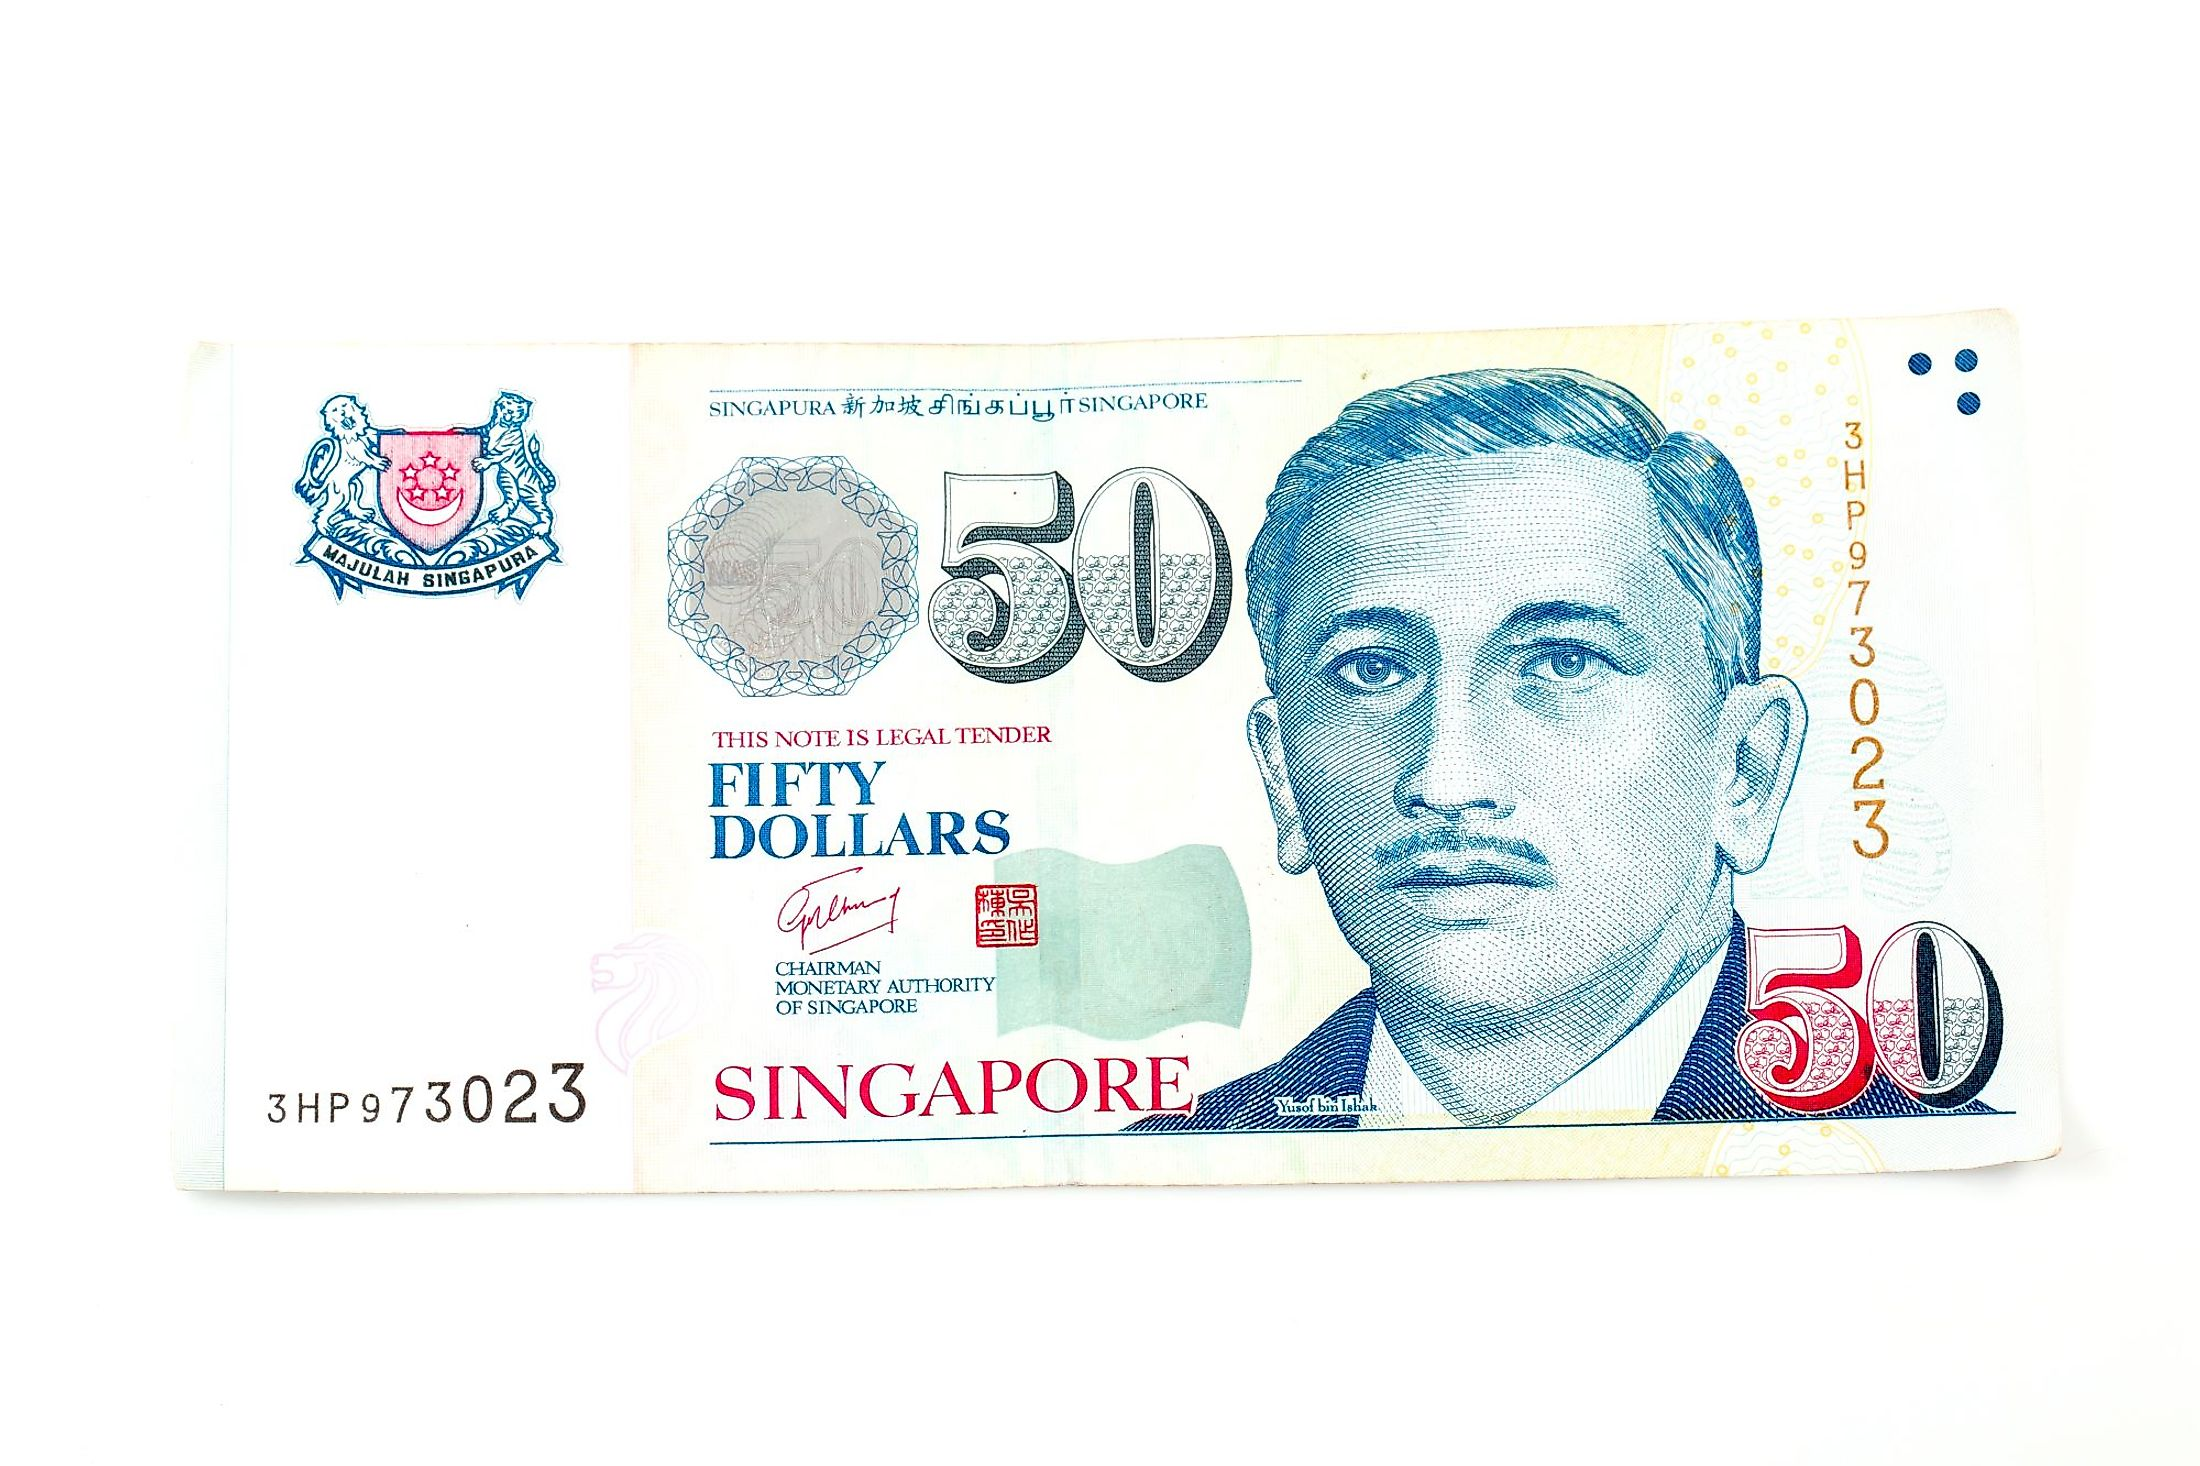 Singaporean dollar banknotes.